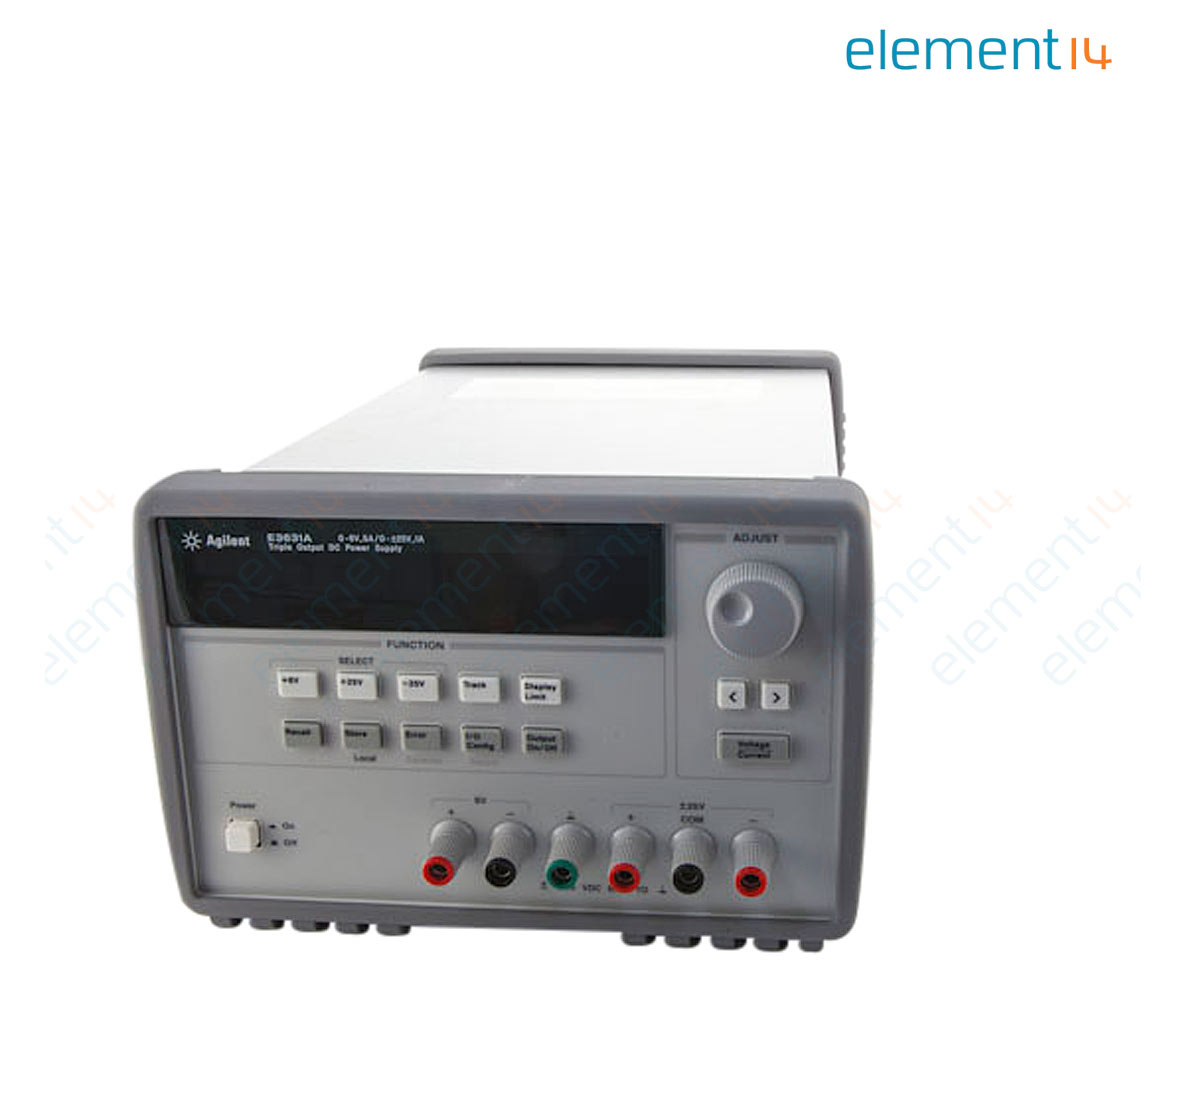 E3631a Keysight Technologies Bench Power Supply Programmable 3 Output Selecting And Using Rs 232 Interface Parts For Your Voltages Richmedia 374kb En